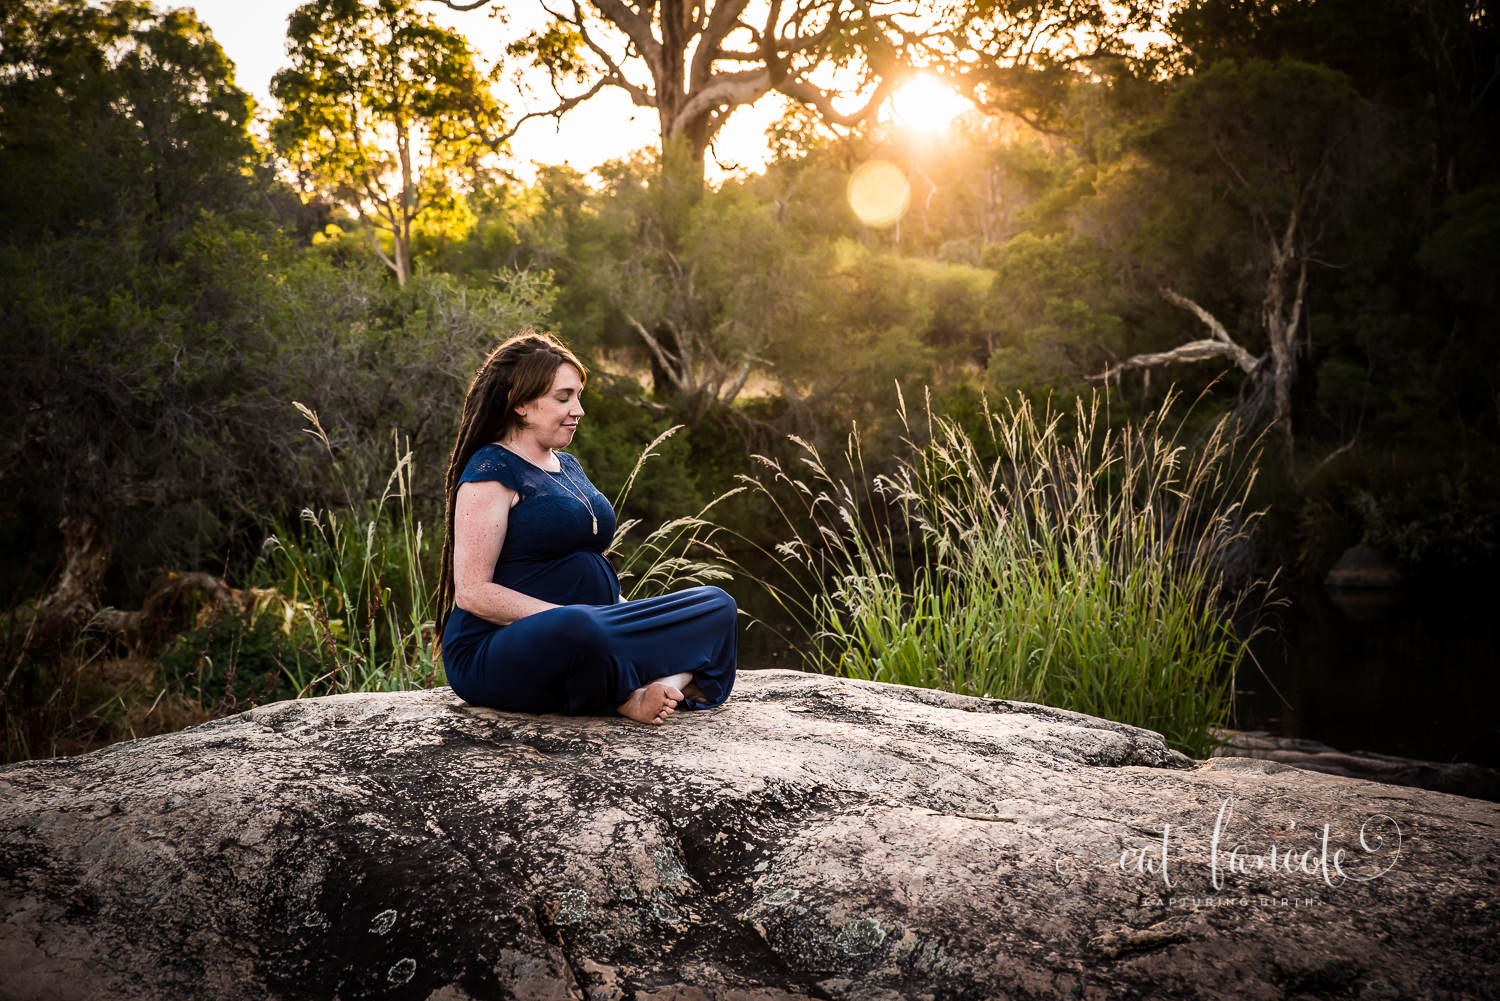 Relaxed-Maternity-Session-in-Perth-Hills_Perth-Birth-Maternity-Photographer8.jpg